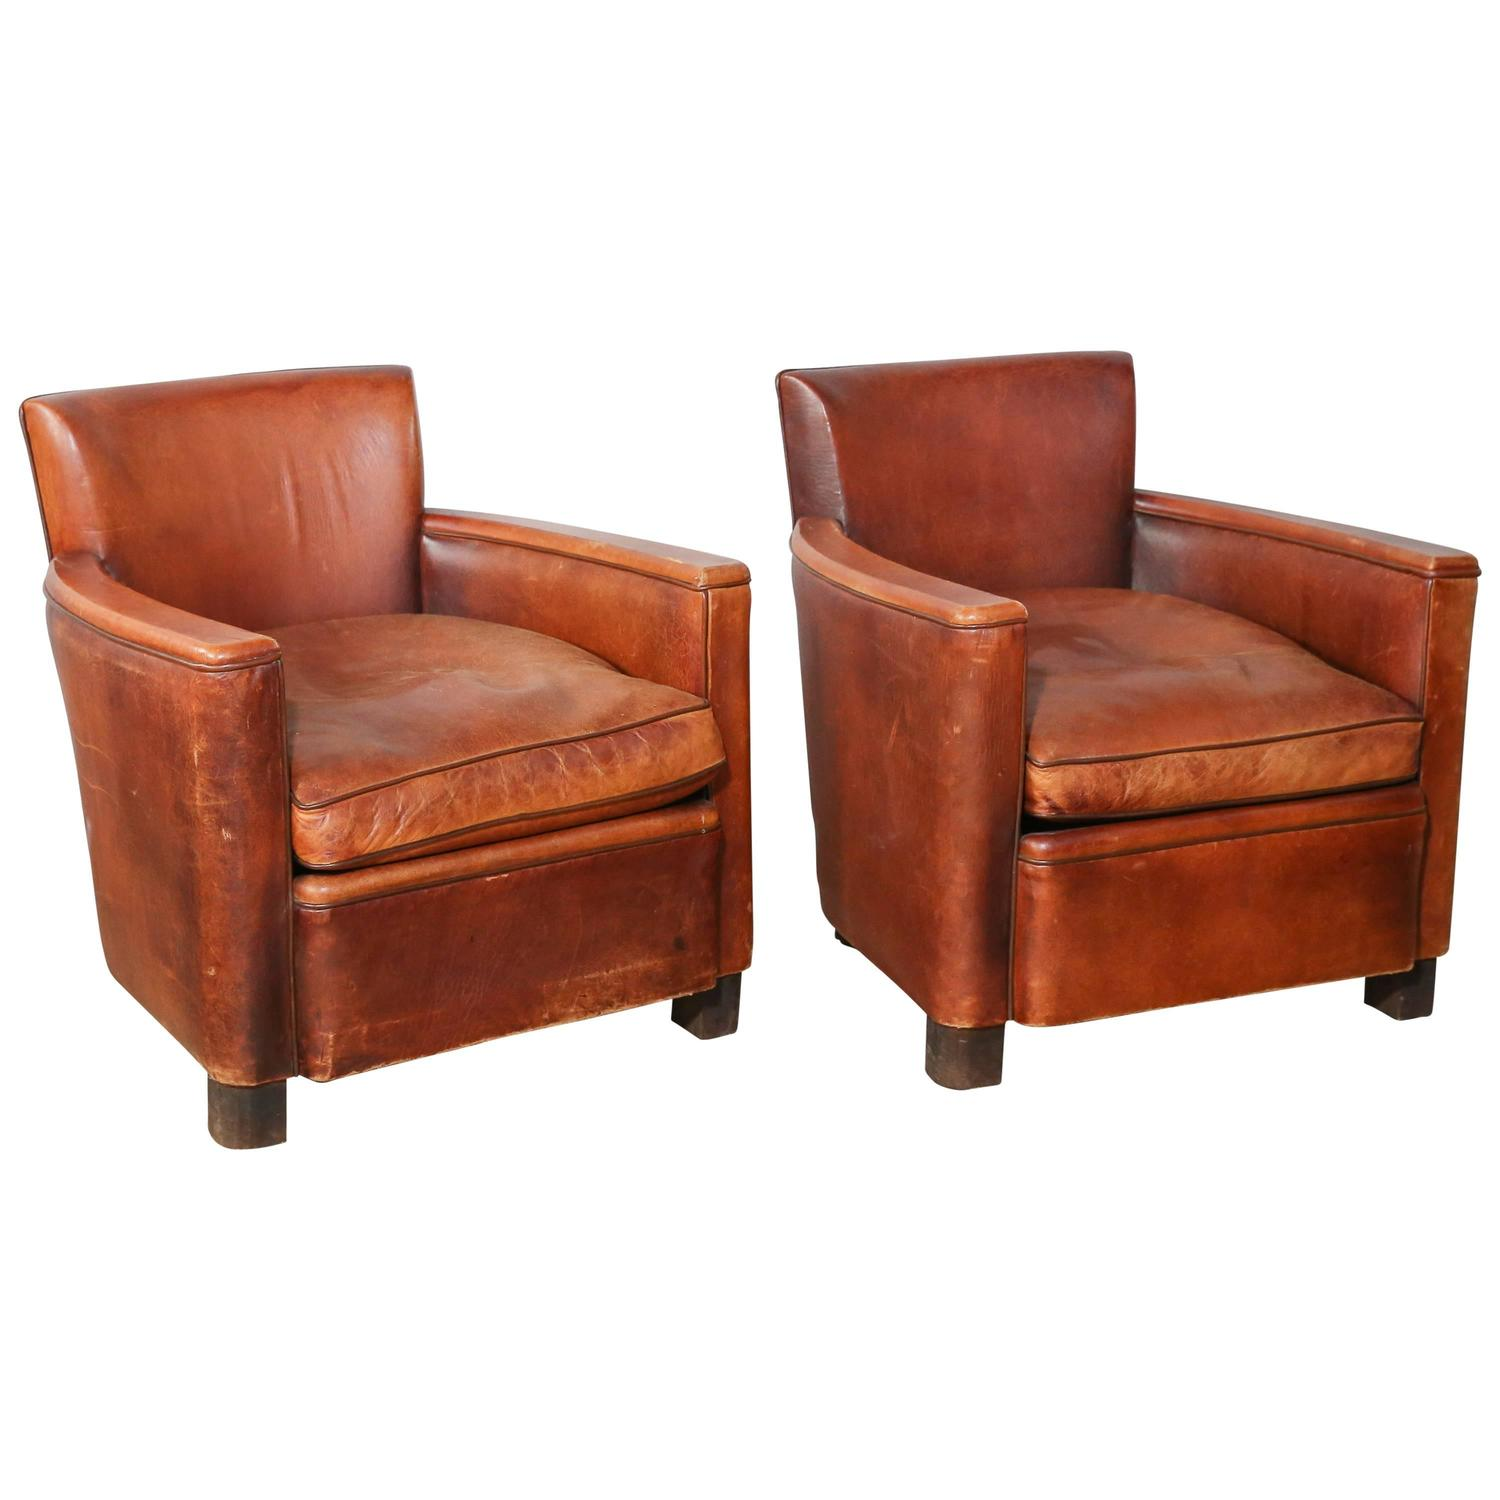 leather club chairs for sale john lewis armchair covers pair of vintage at 1stdibs